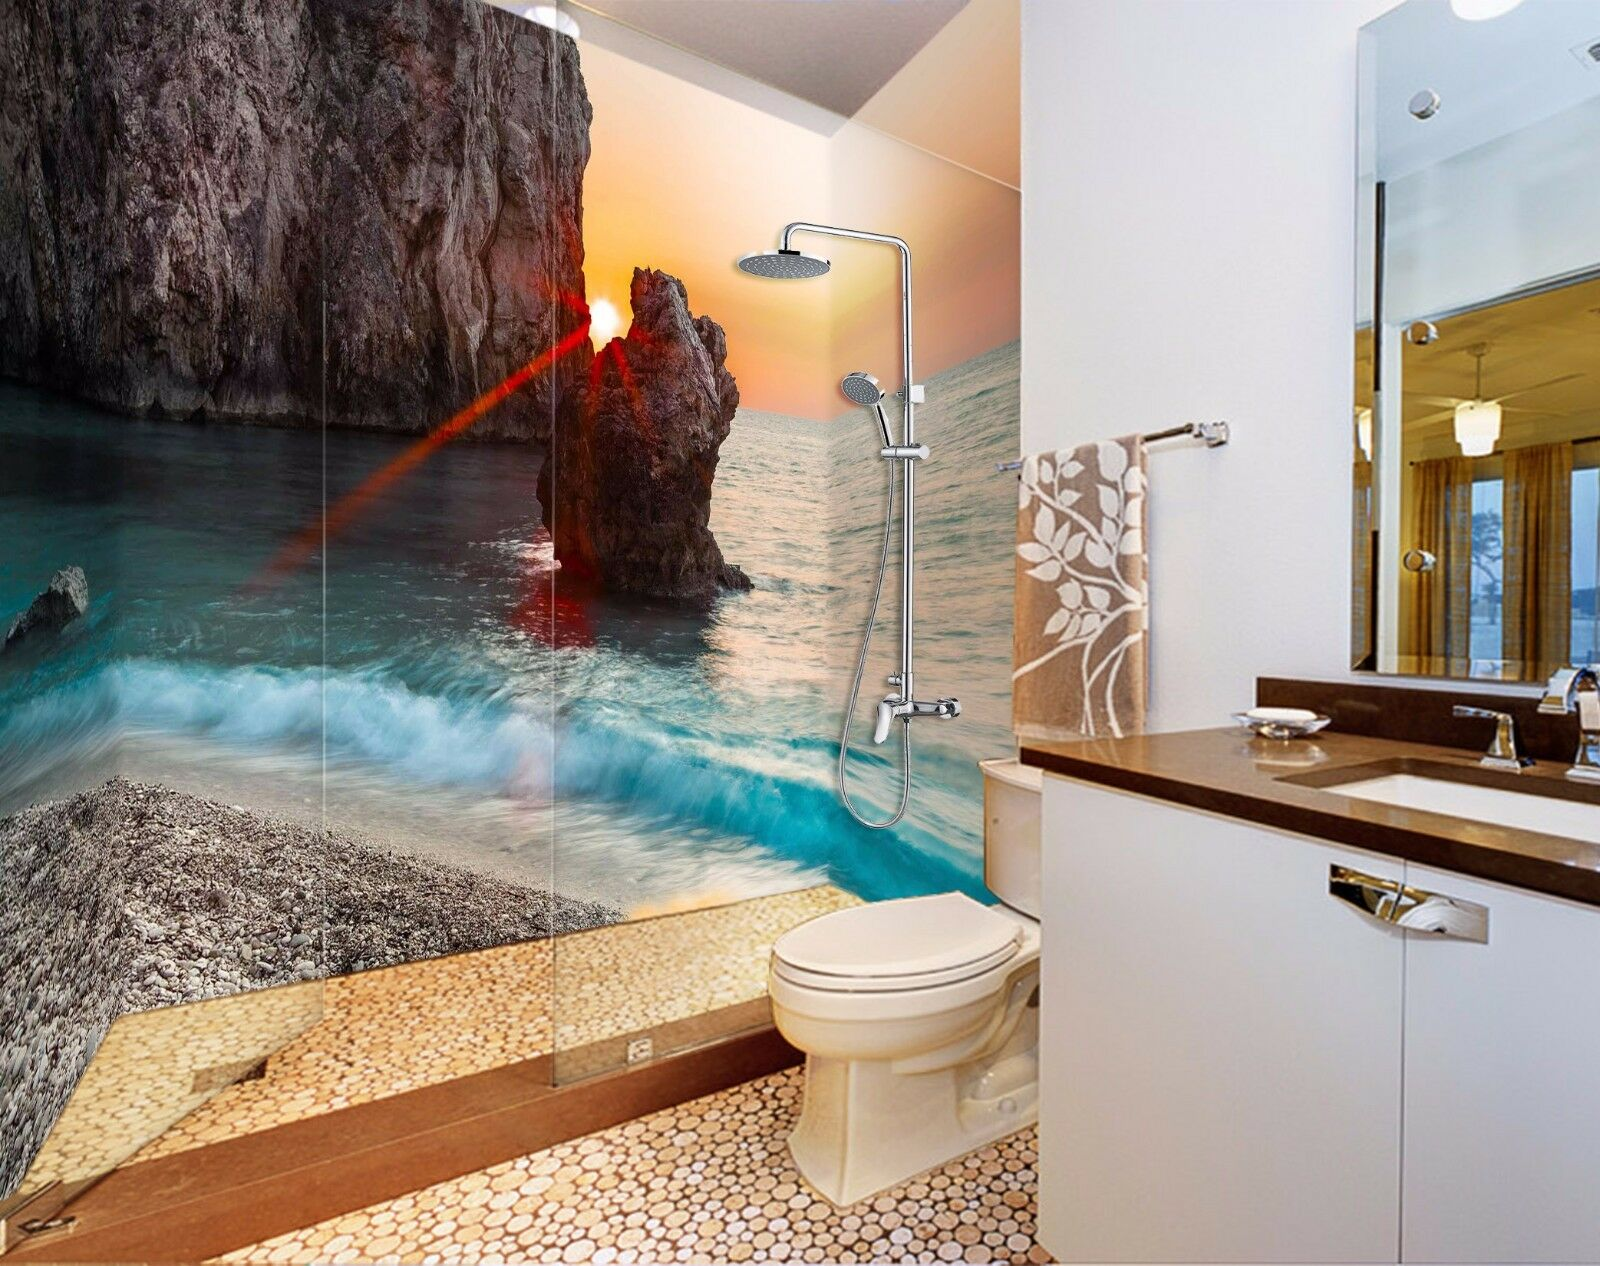 3D Sunrise Sea View 538 WallPaper Bathroom Print Decal Wall Deco AJ WALLPAPER AU